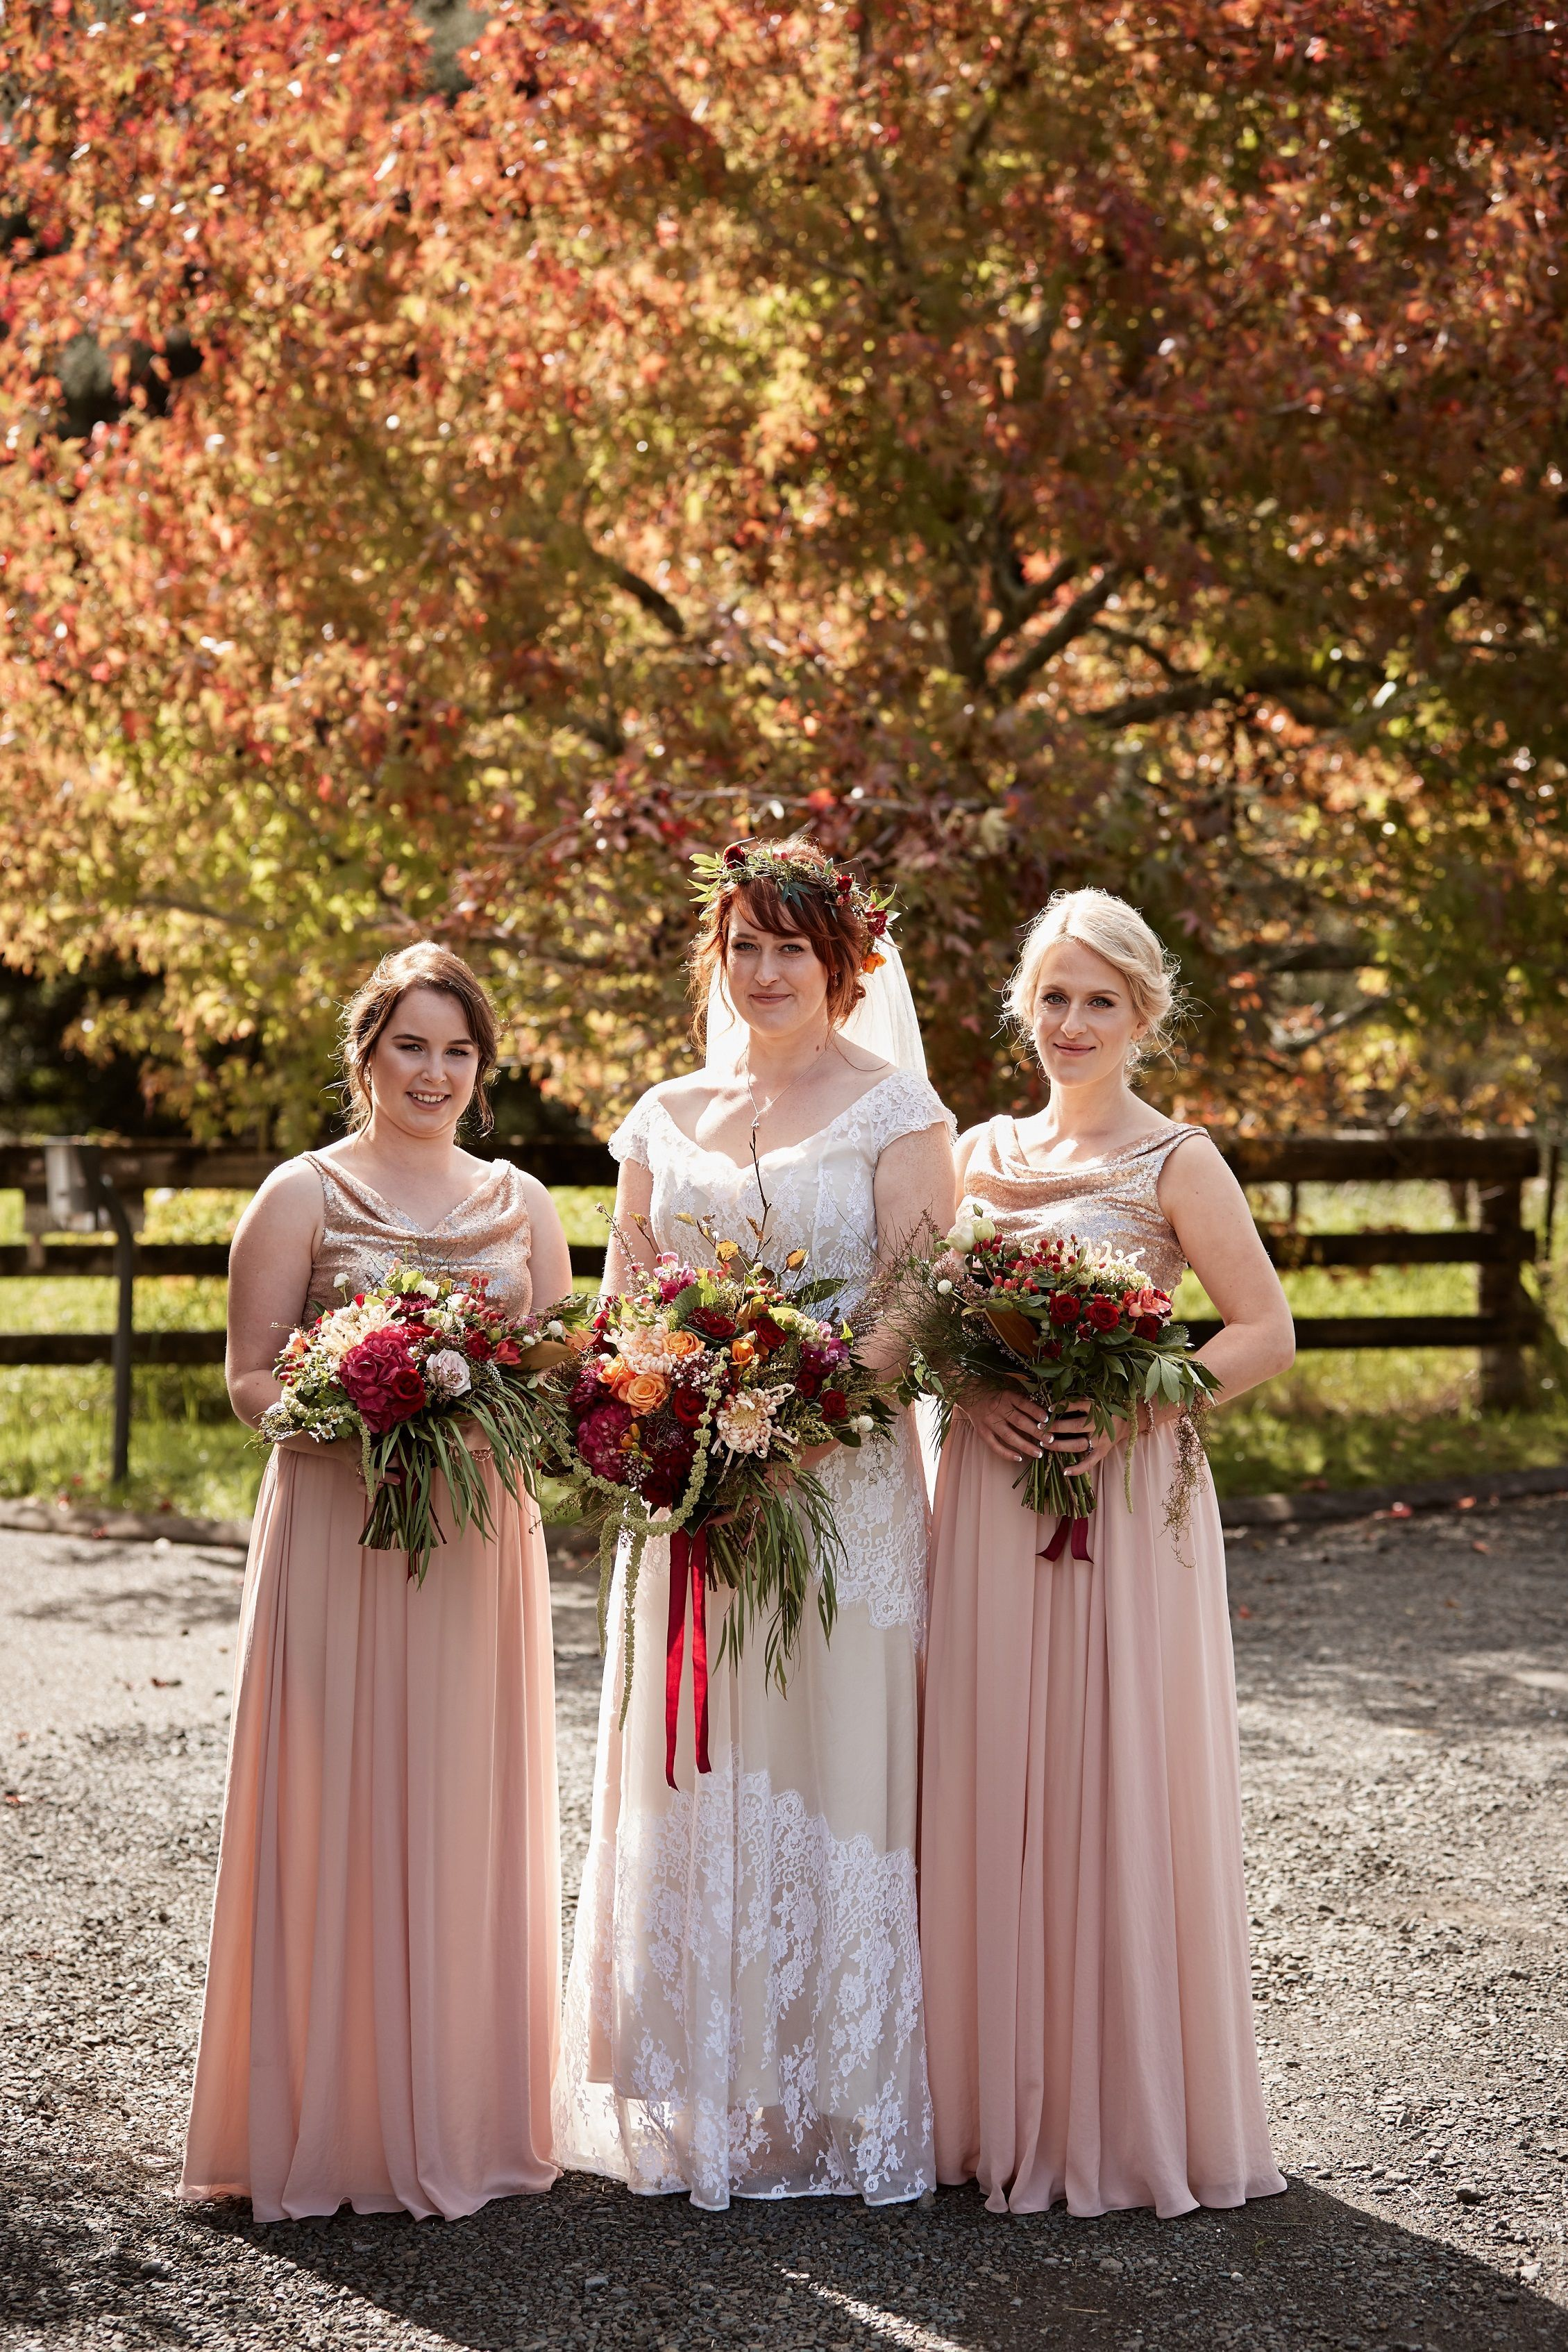 2c314fef87721 REAL WEDDING    ViCTOR Bridesmaids wearing our Esther Skirt in Blush Pink  and IVY Top in Blush Matt Sequins